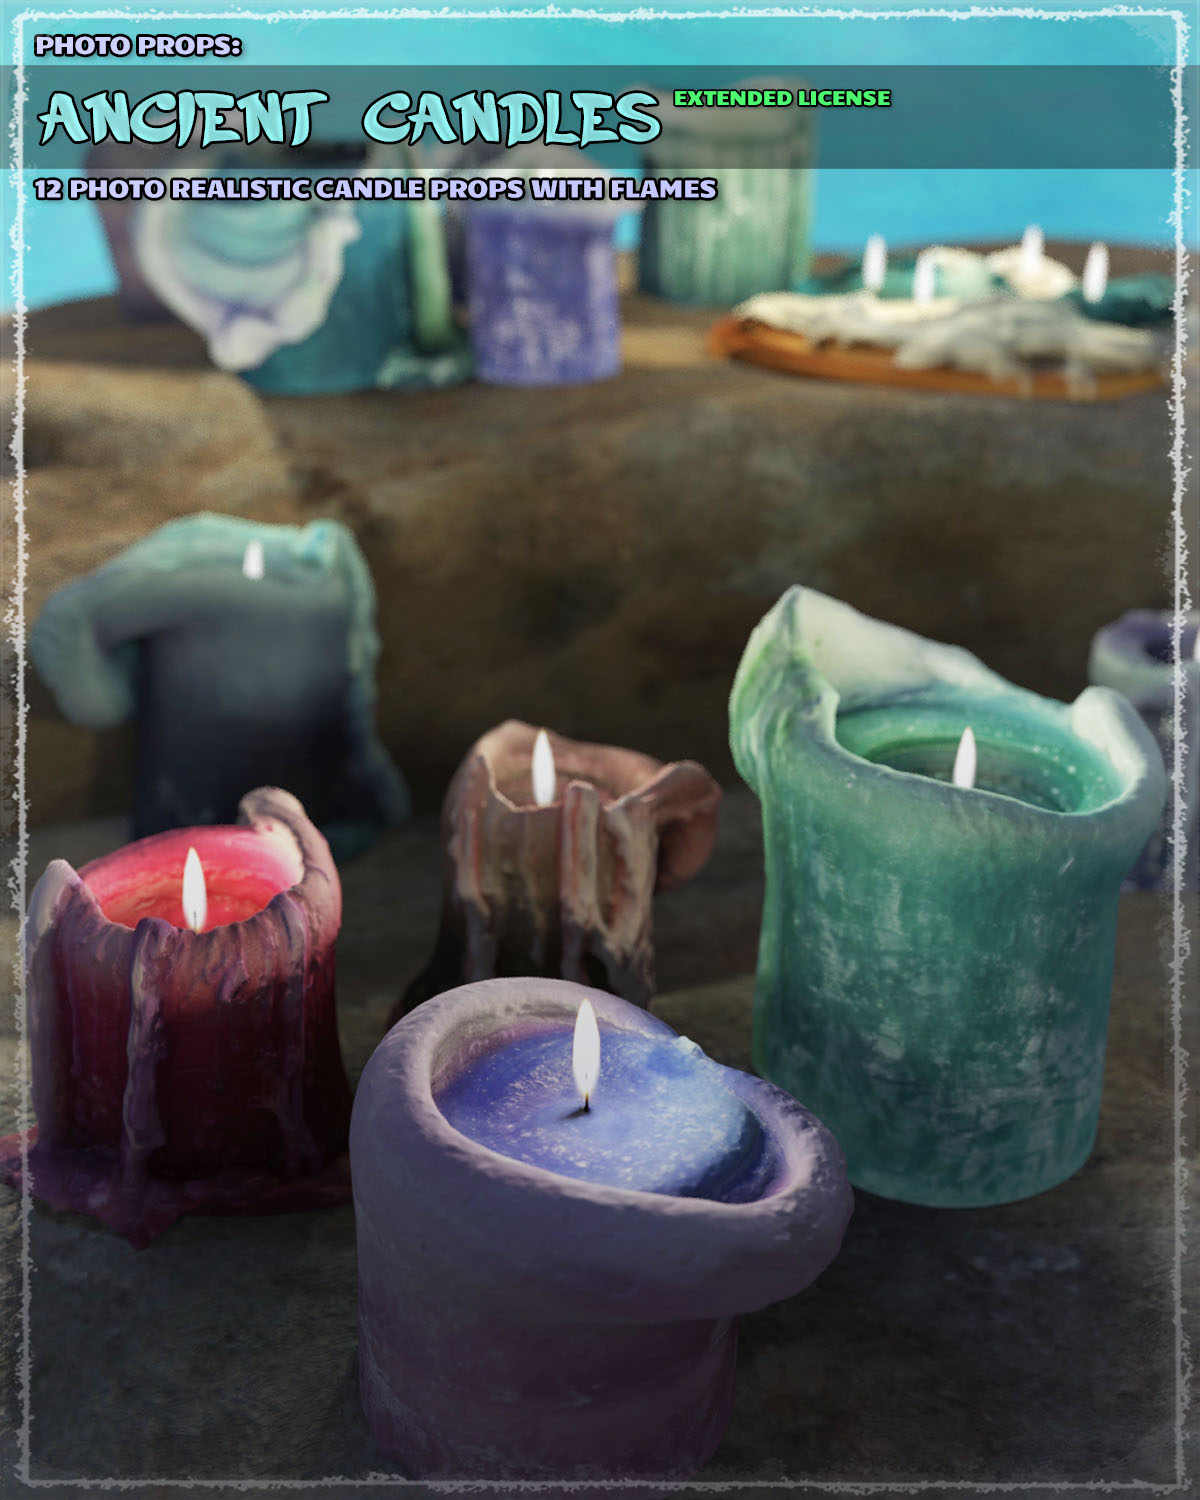 Photo Props: Ancient Candles - Extended License